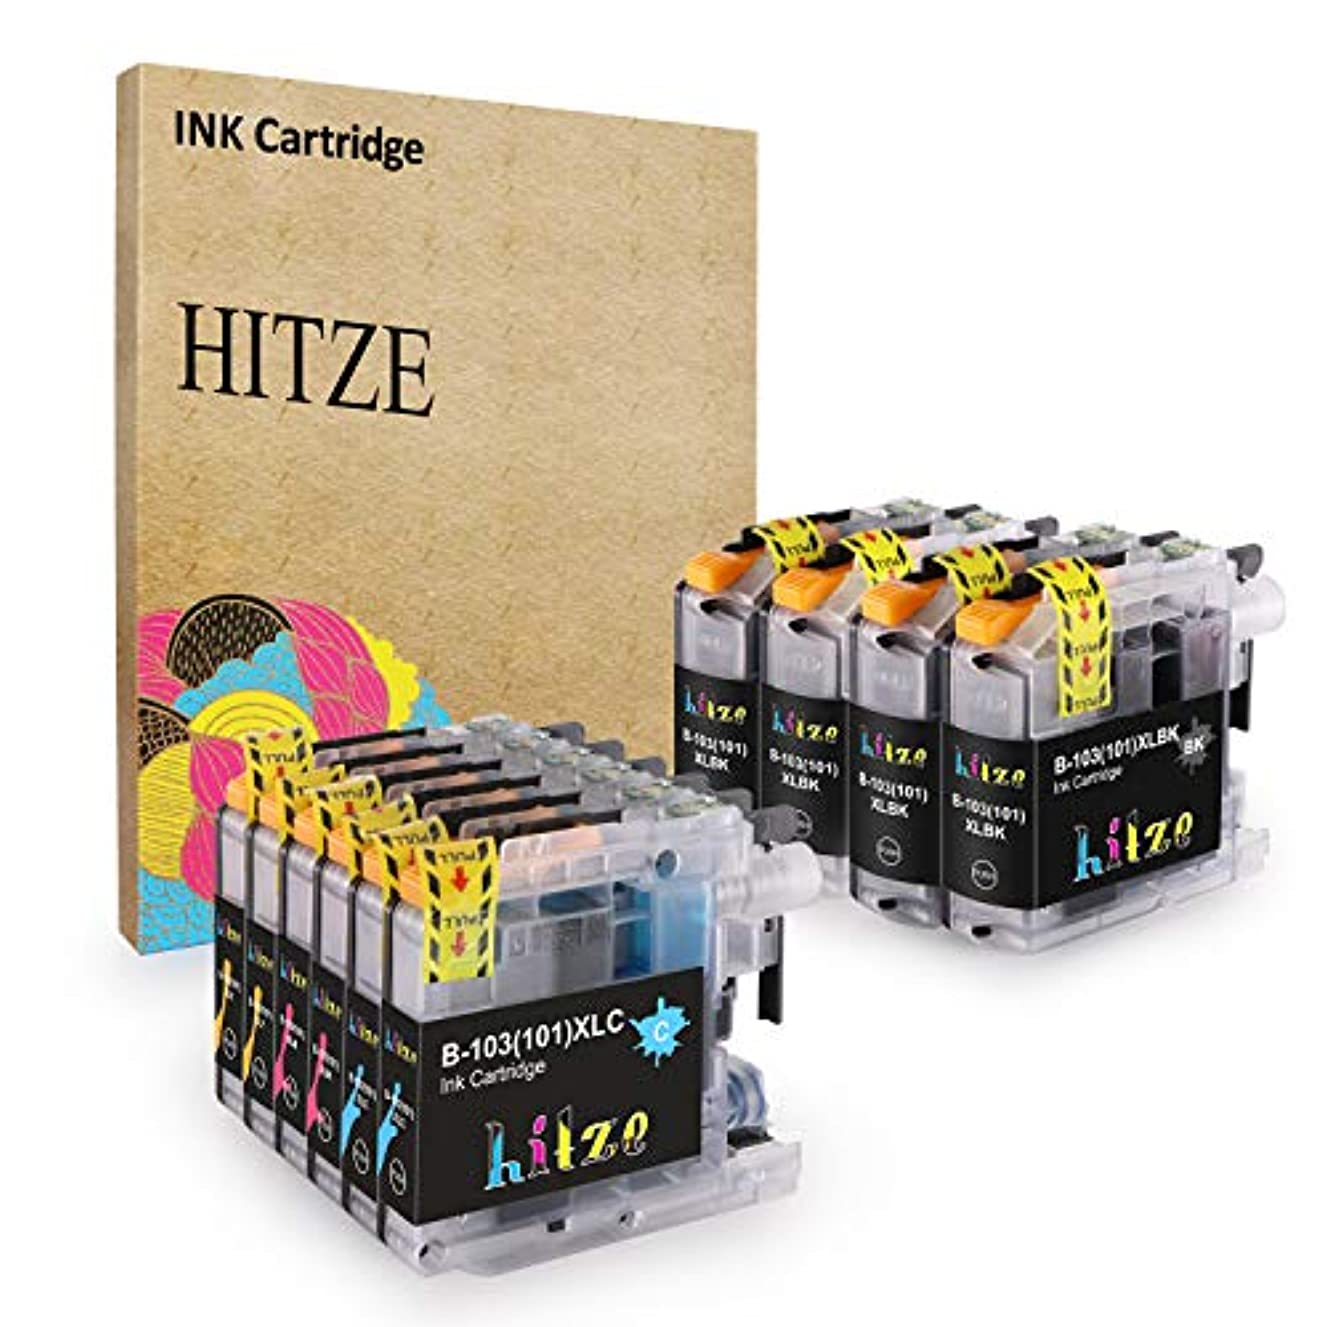 Hitze Compatible Ink Cartridge Replacement for Brother LC 103XL LC 101XL for Brother MFC J450DW J870DW J470DW J6920DW J4510DW J4410DW (4 Black, 2 Cyan, 2 Magenta, 2 Yellow, 10-Pack, High Yield)